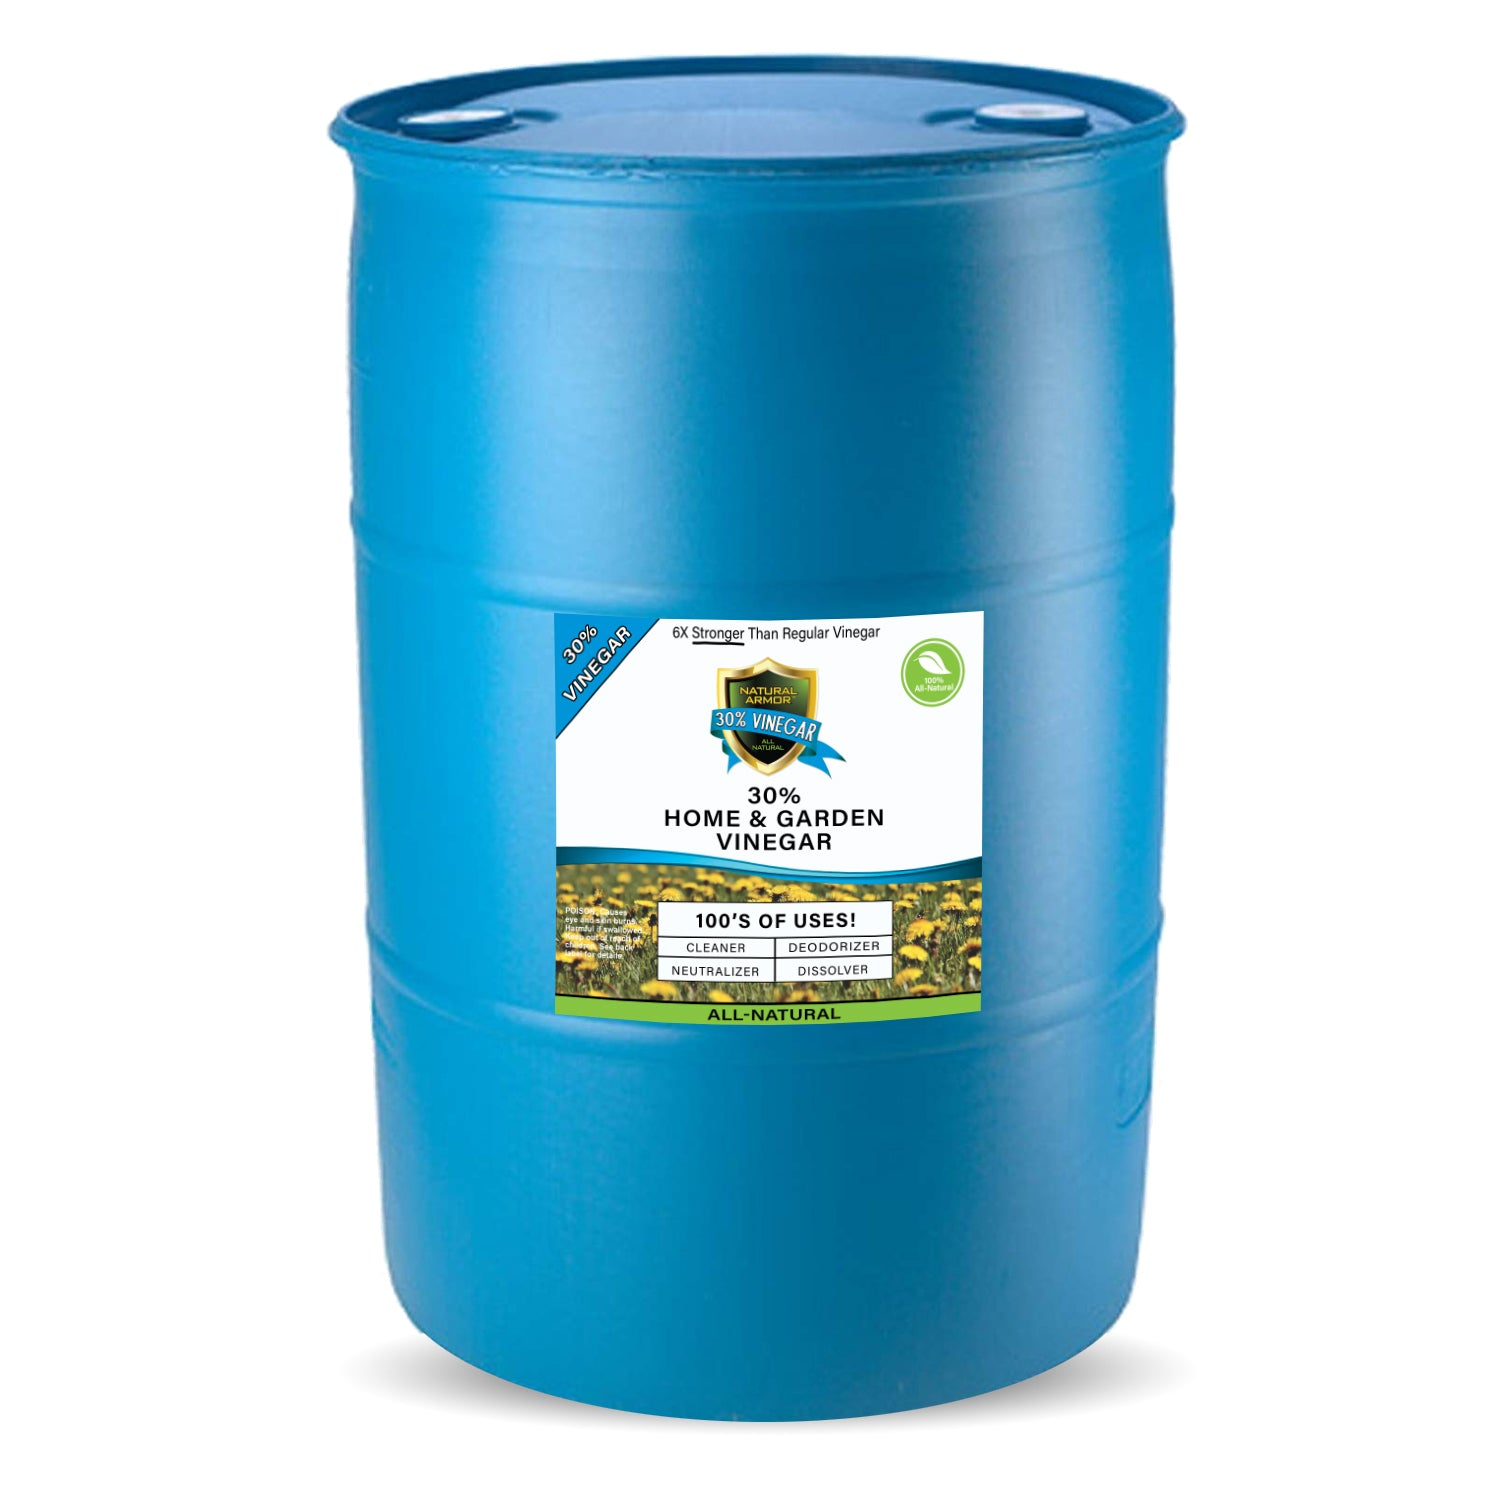 30 Vinegar 1 30 Gallon Drum Natural Armor